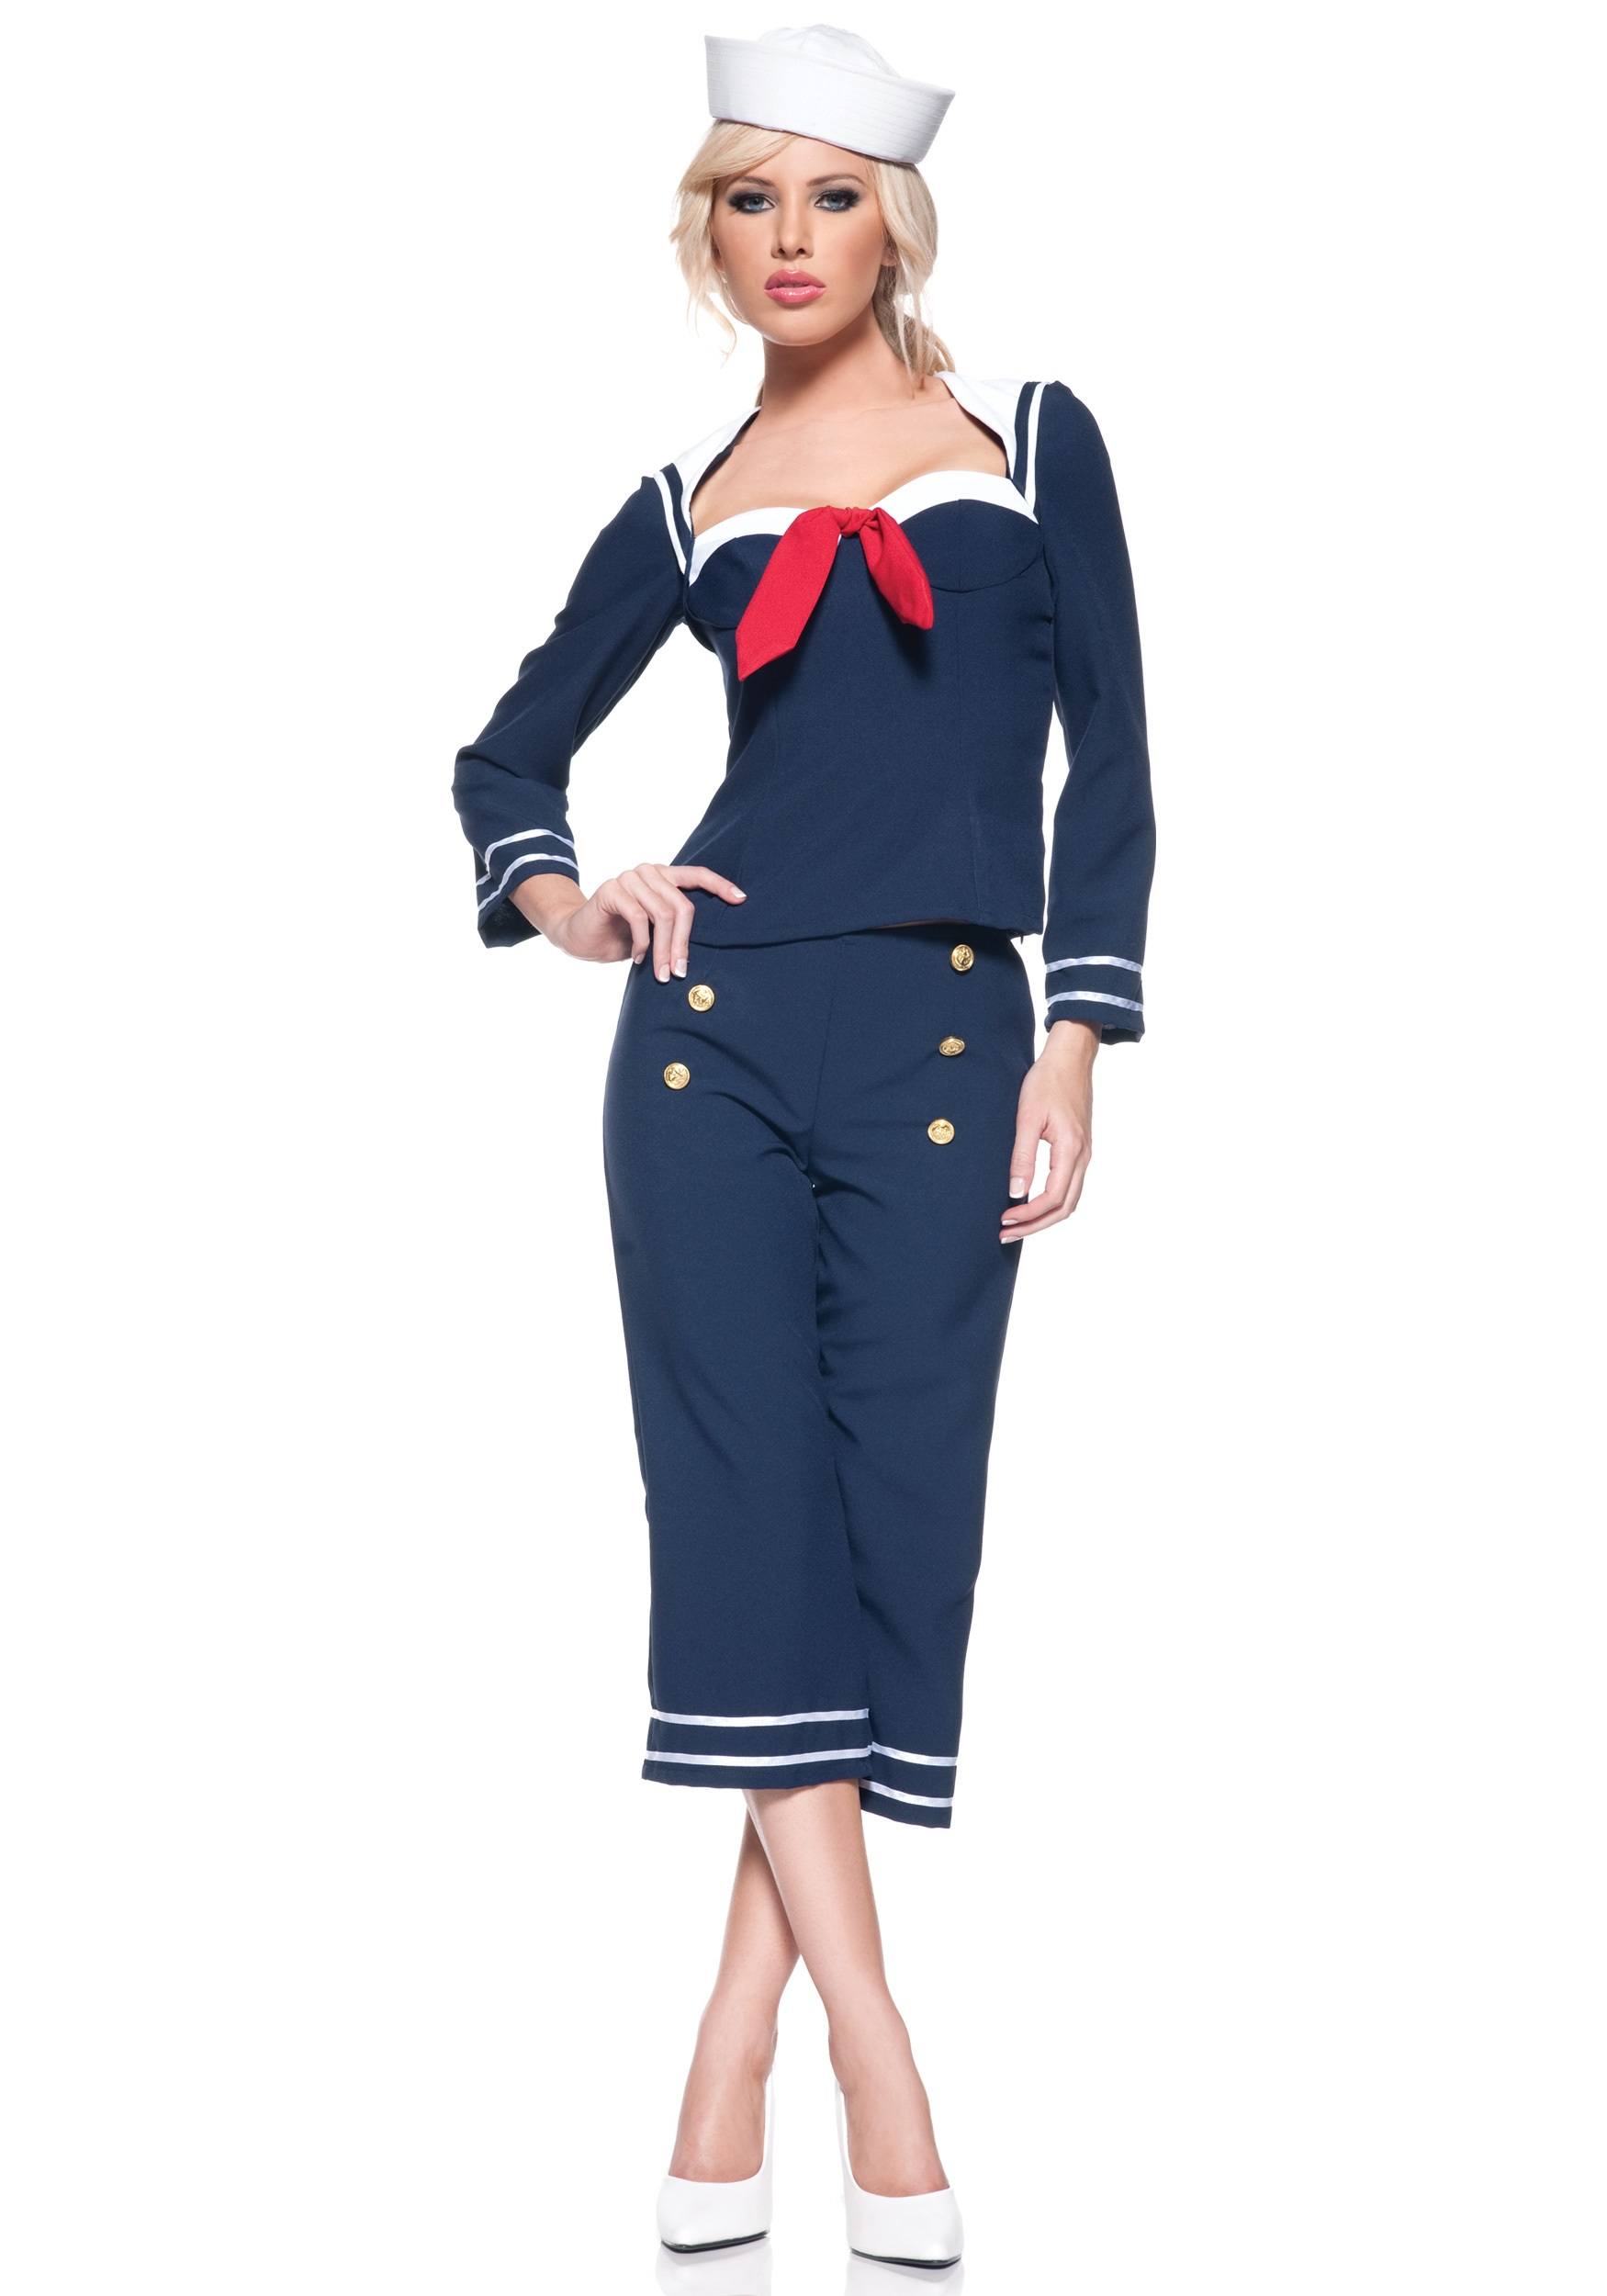 Womens Ship Mate Costume